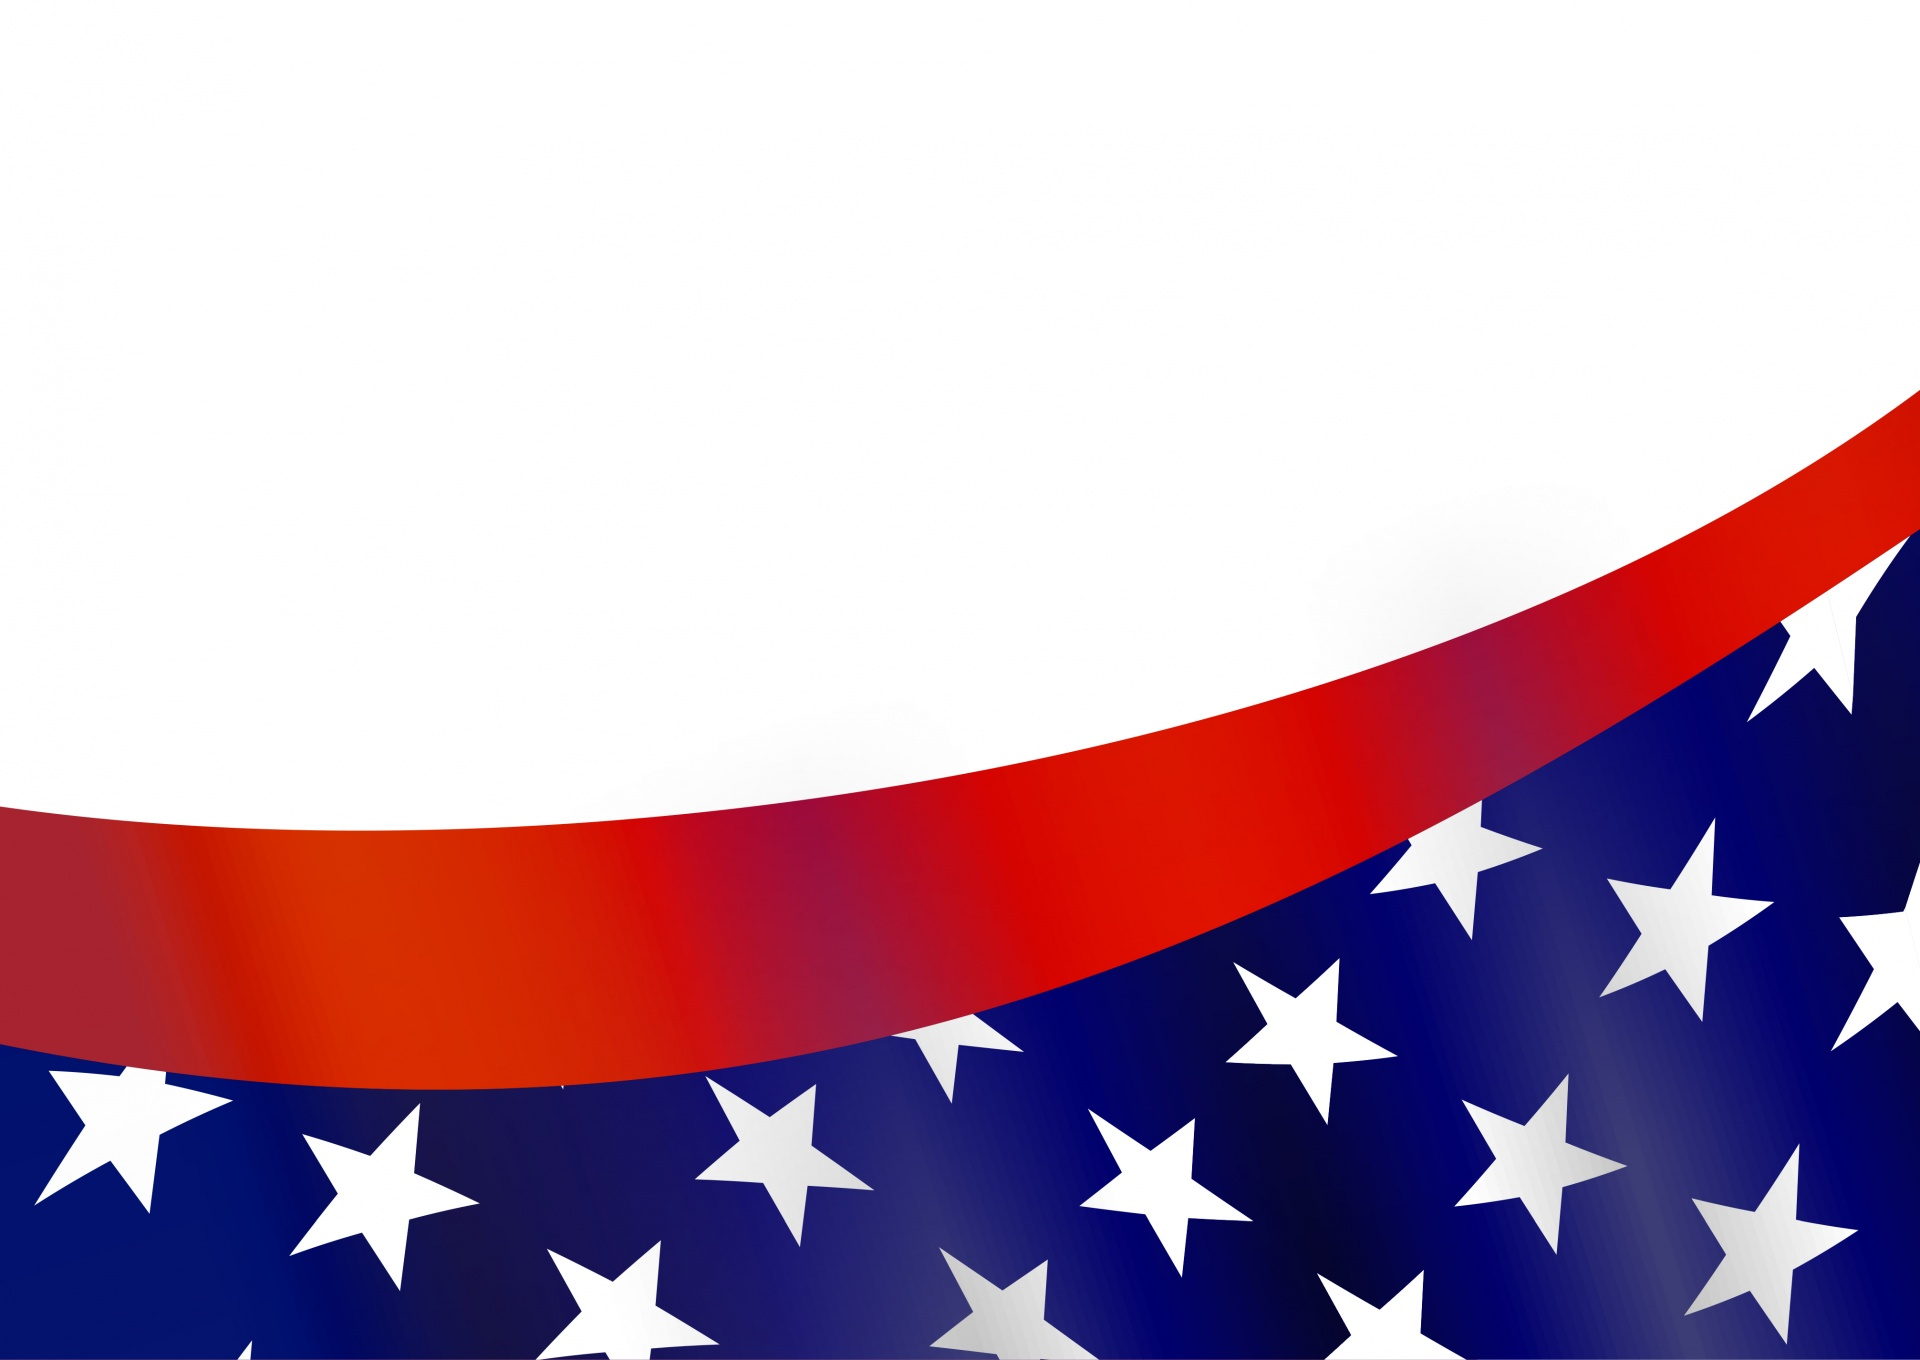 Us clipart. United states of america